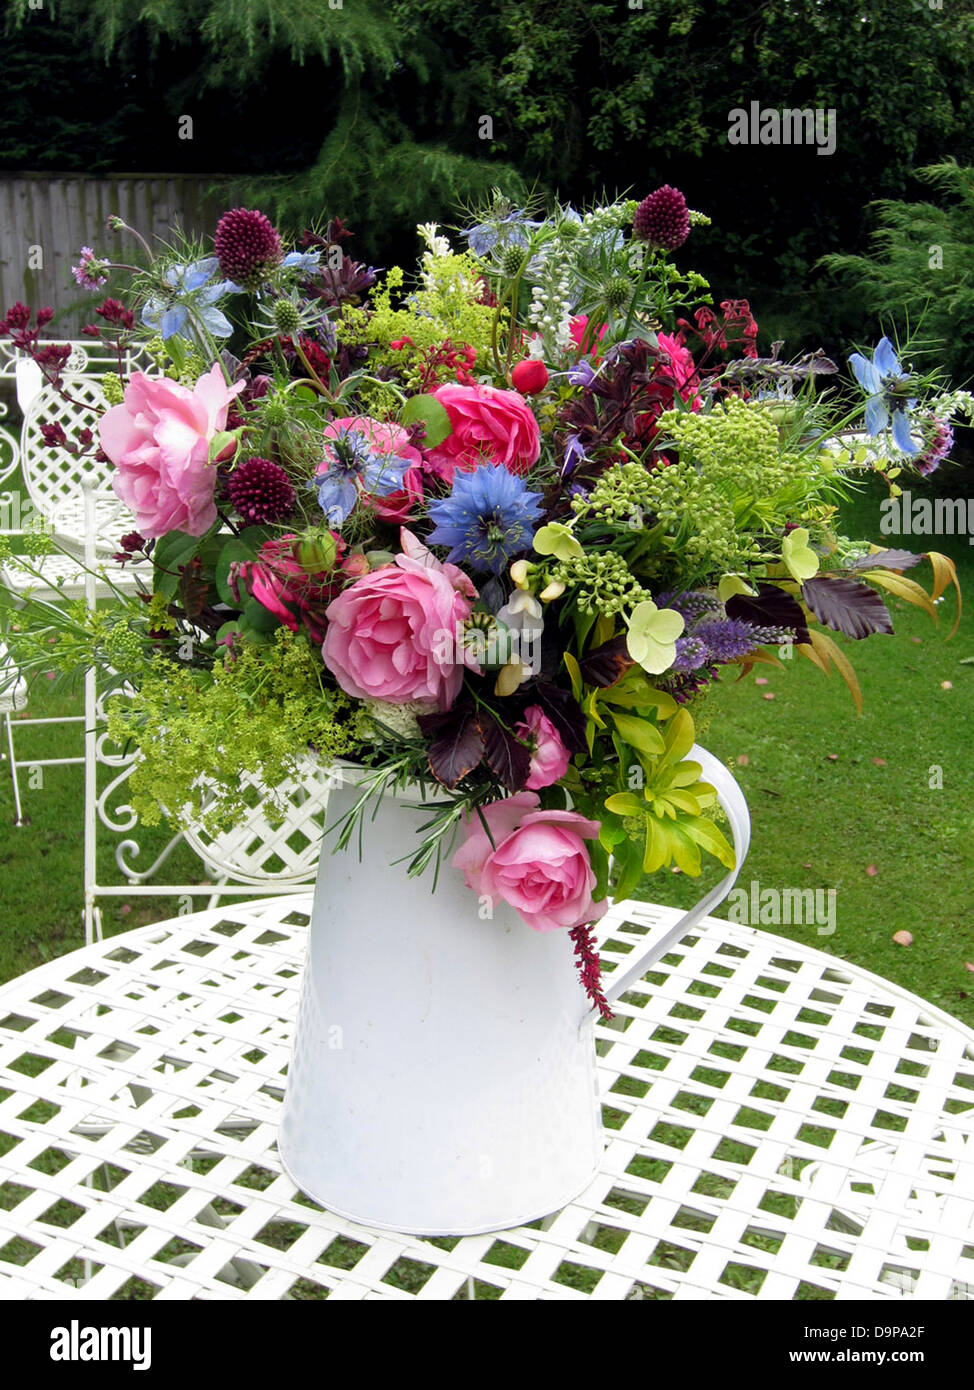 A Selection Of English Garden Flowers In A Simple White Vase In An English  Garden